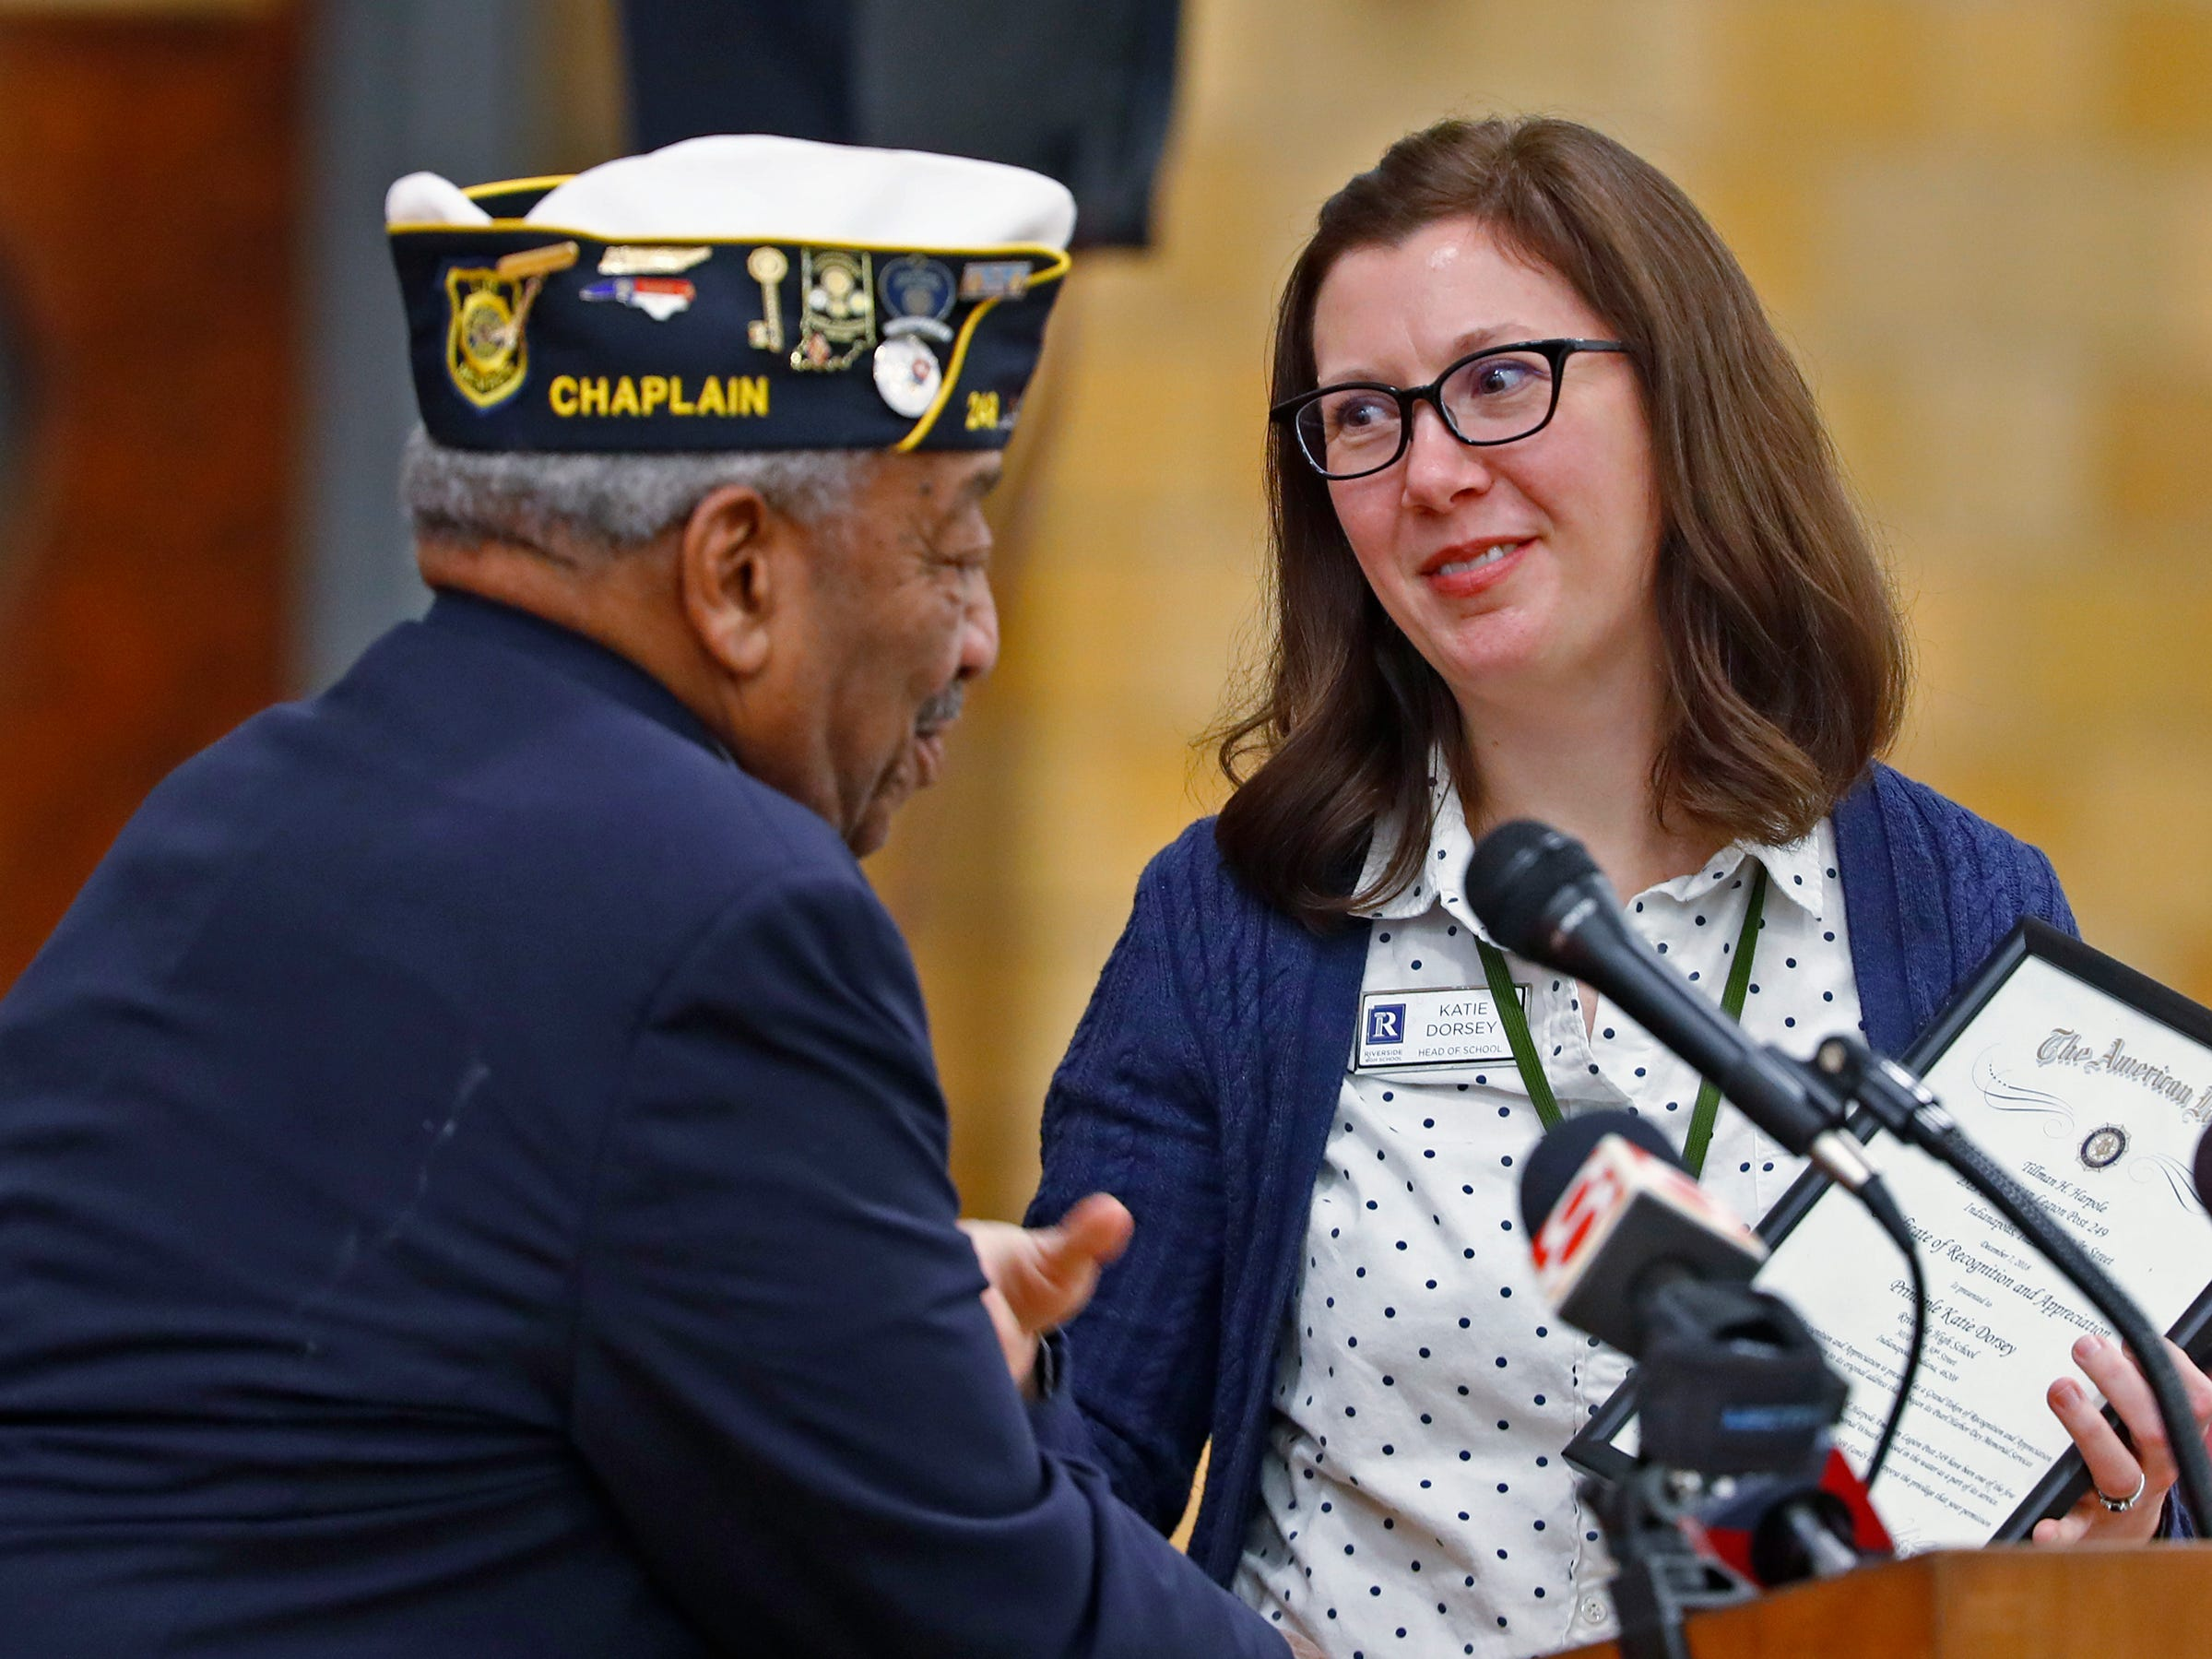 Chaplain of Indiana's 11th District of the American Legion Edward Harris Jr., left, thanks Riverside principal Katie Dorsey and gives her a certificate of recognition and appreciation, during the Pearl Harbor Day Remembrance at Riverside High School, Friday, Dec. 7, 2018.  The former Heslar Naval Armory used to host the event to remember those who died and to honor those who survived in the Dec. 7, 1941 Japanese attack on Pearl Harbor which plunged the United States into World War II.